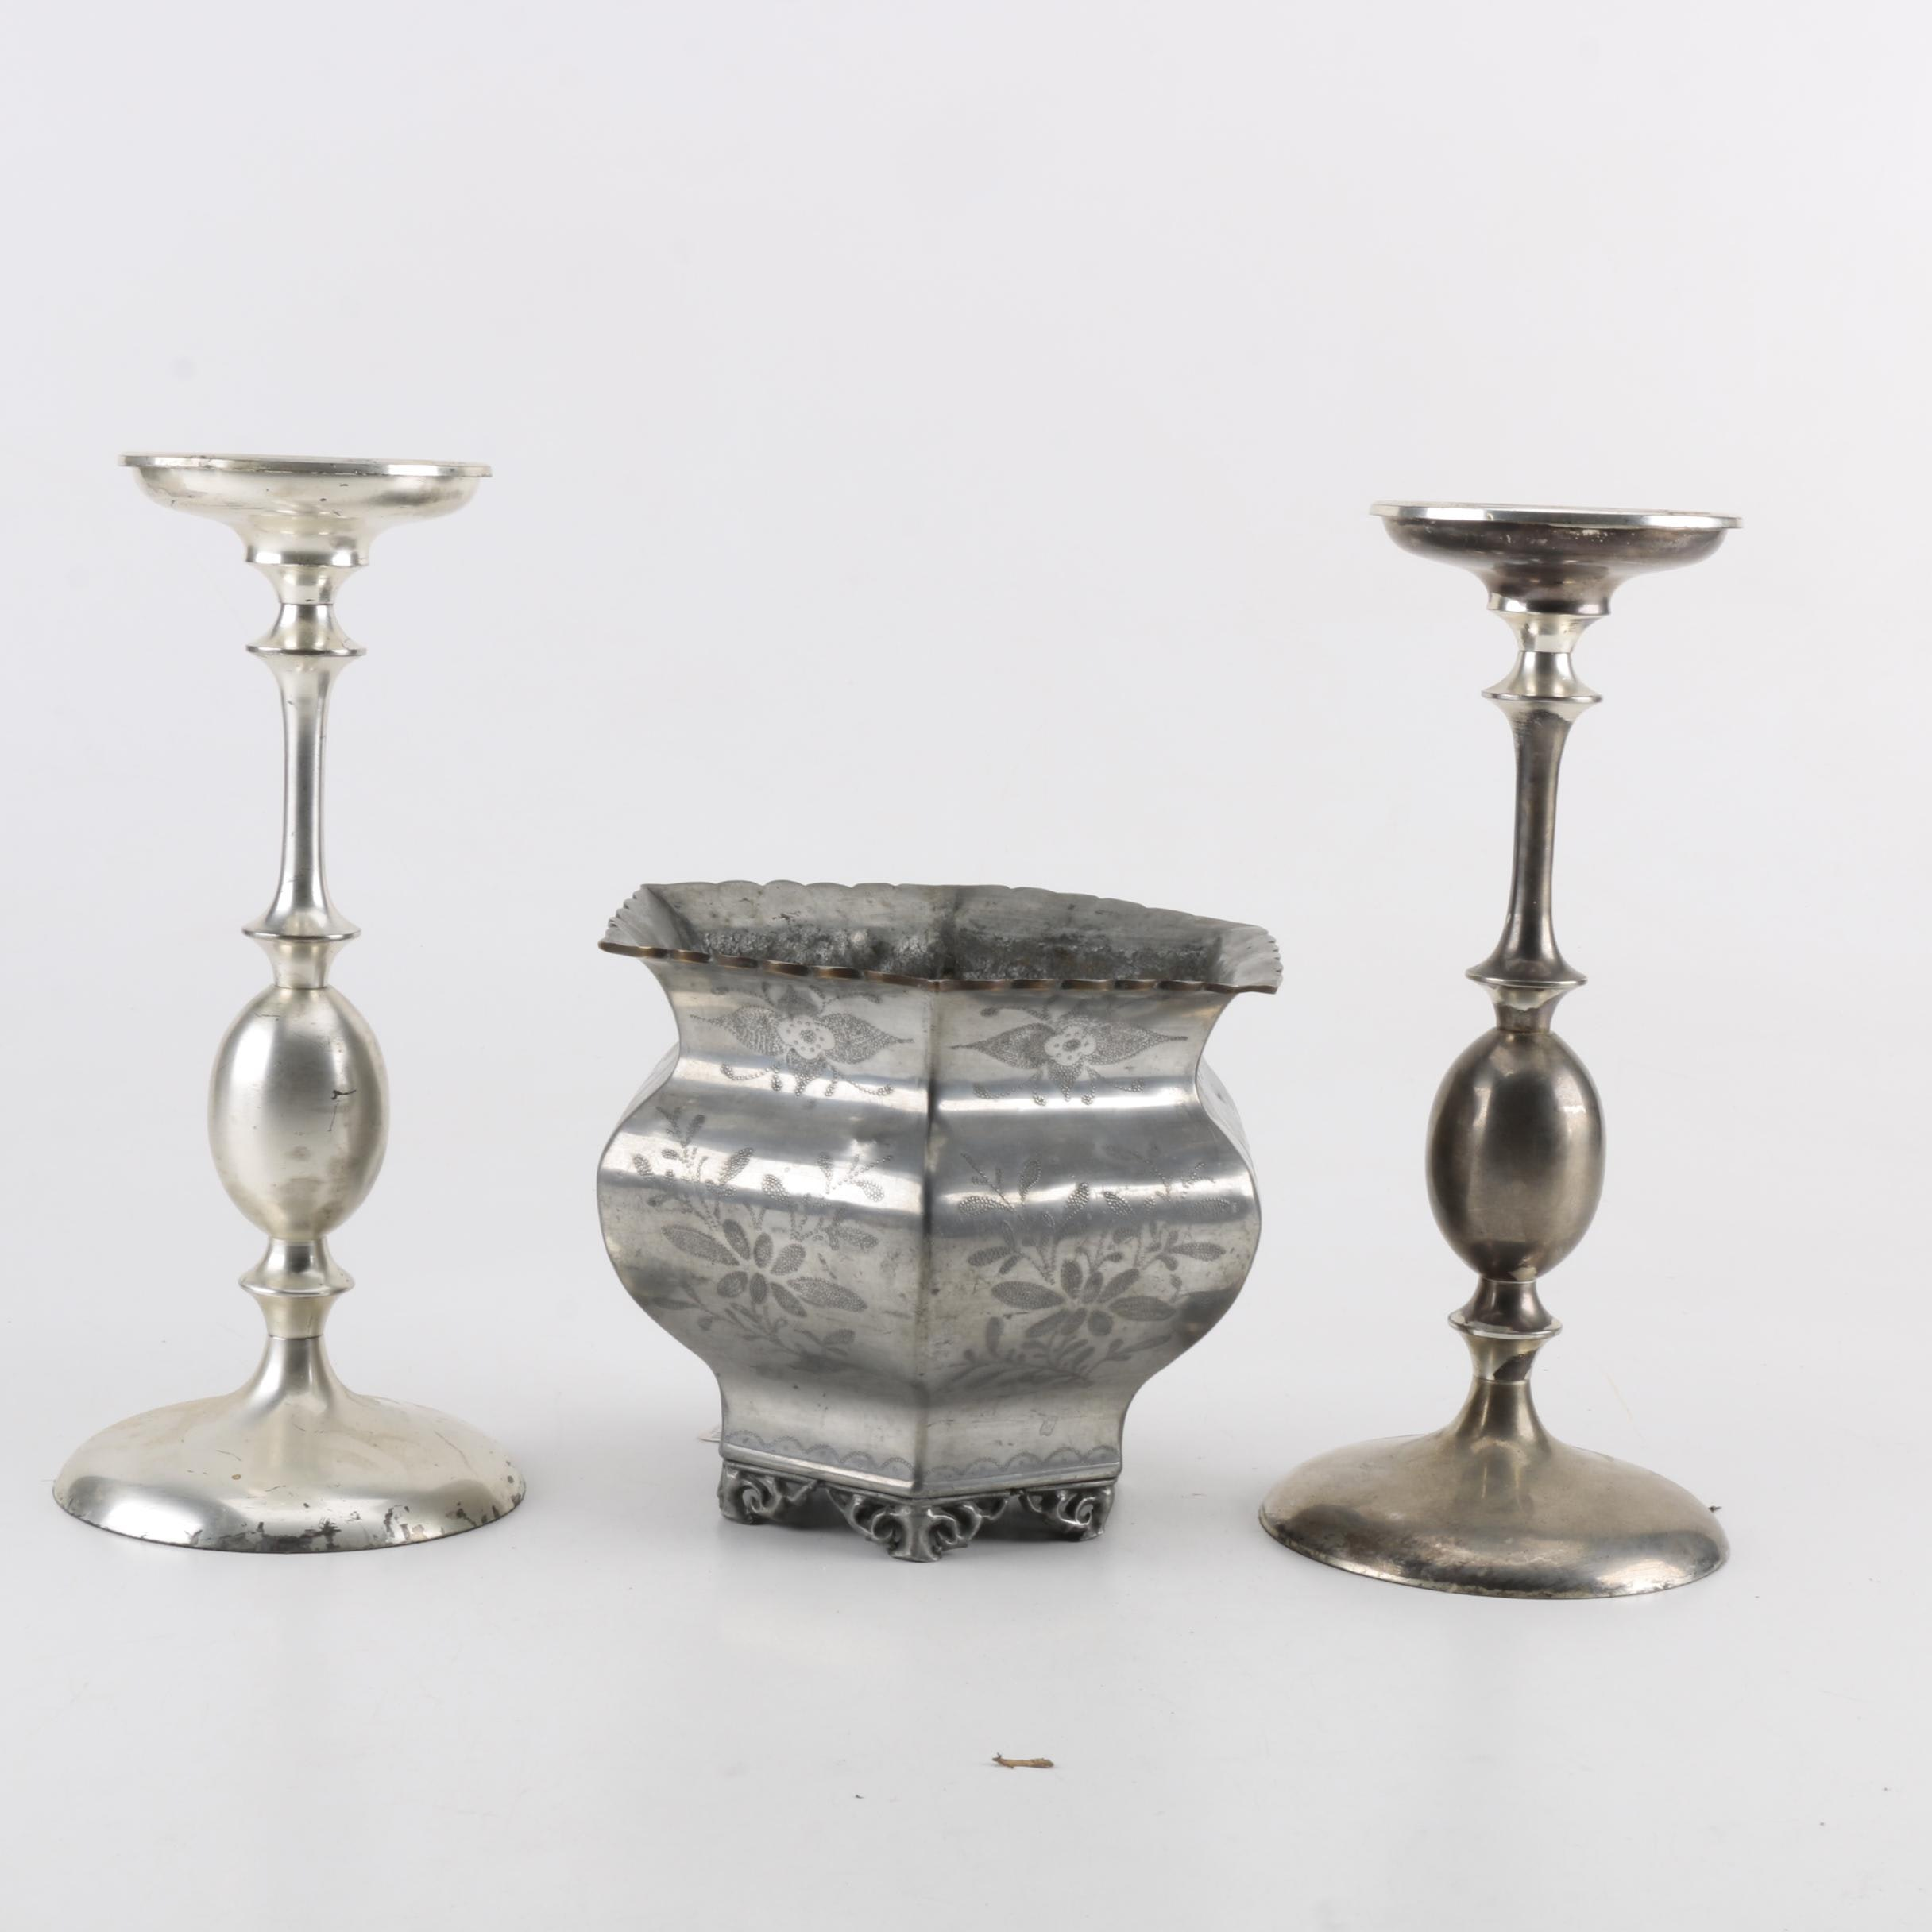 Etched Chinese Pewter Cachepot and Silver Toned Candlholders